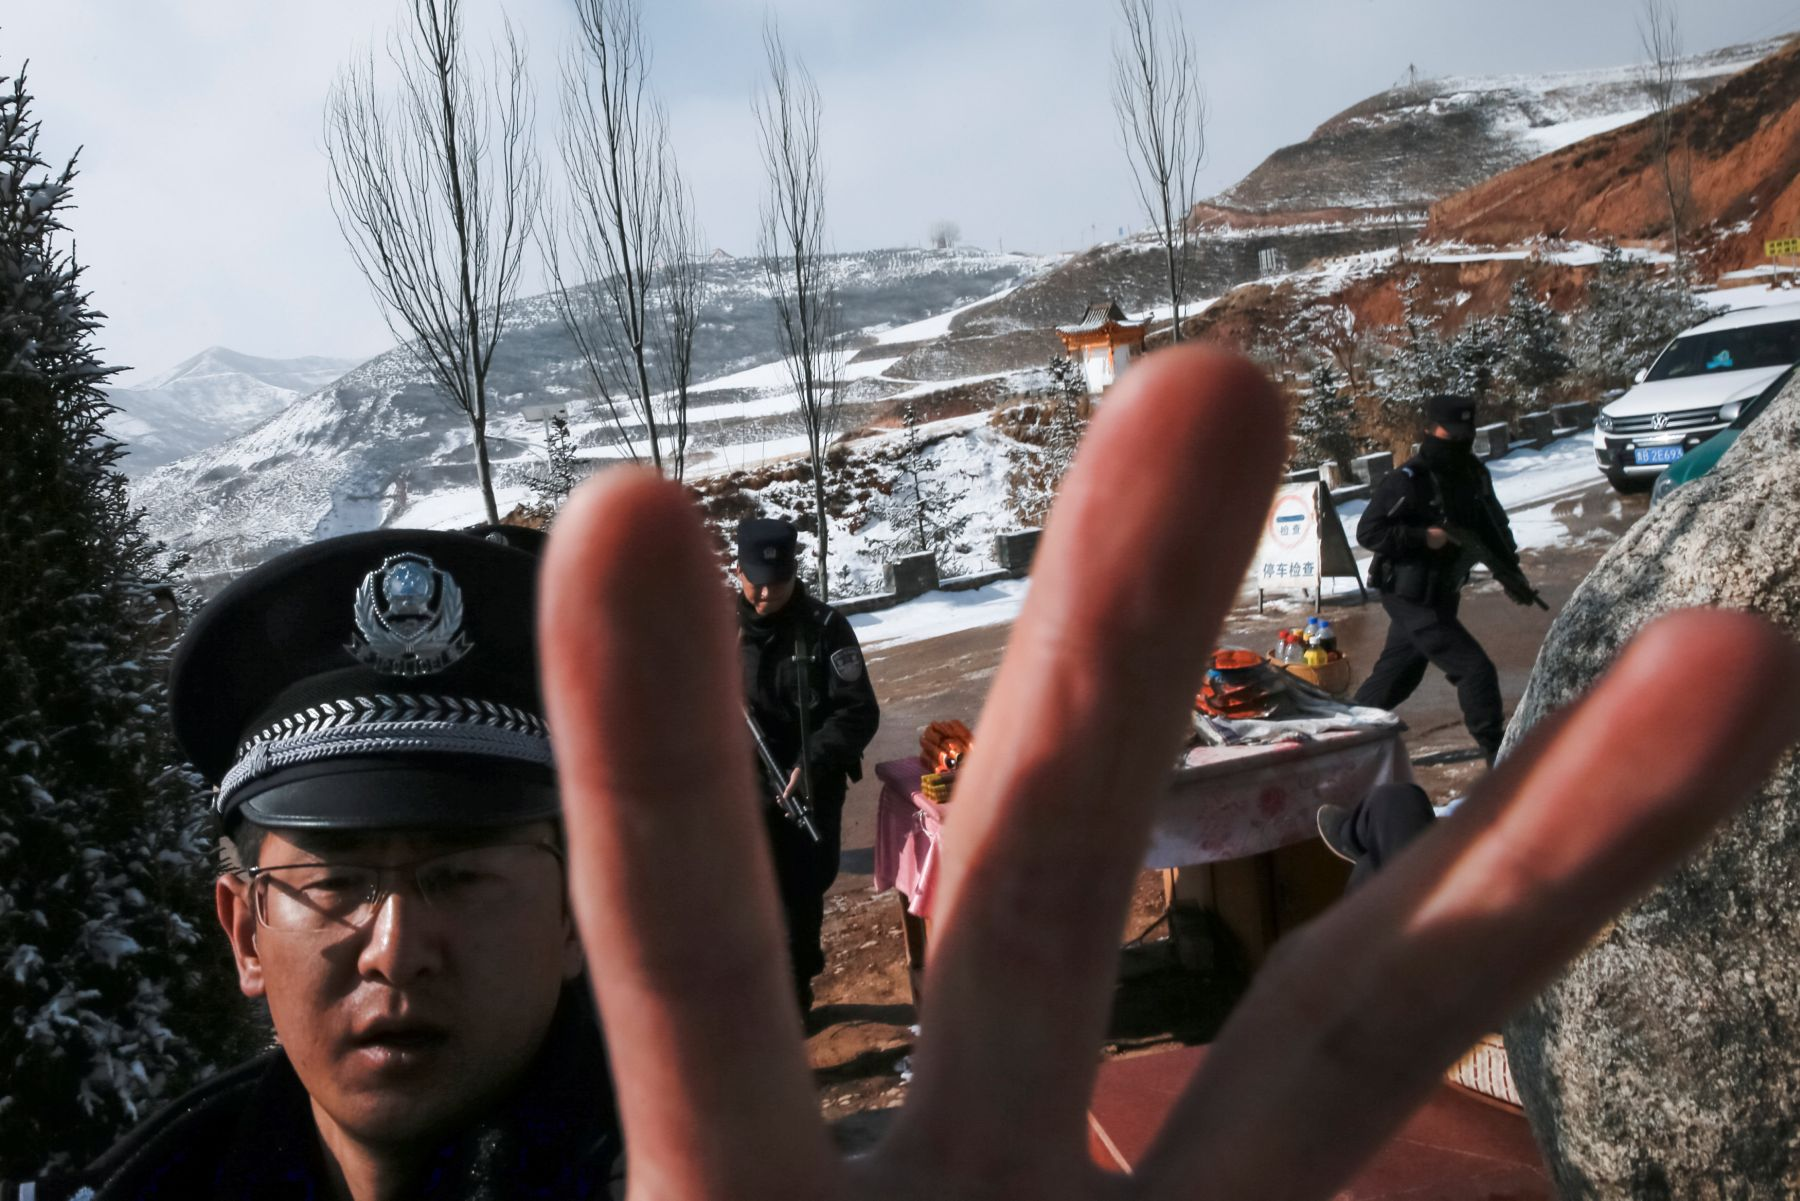 Armed police attempt to prevent the taking of pictures at a checkpoint at the entrance to Taktser, the birthplace of the Dalai Lama